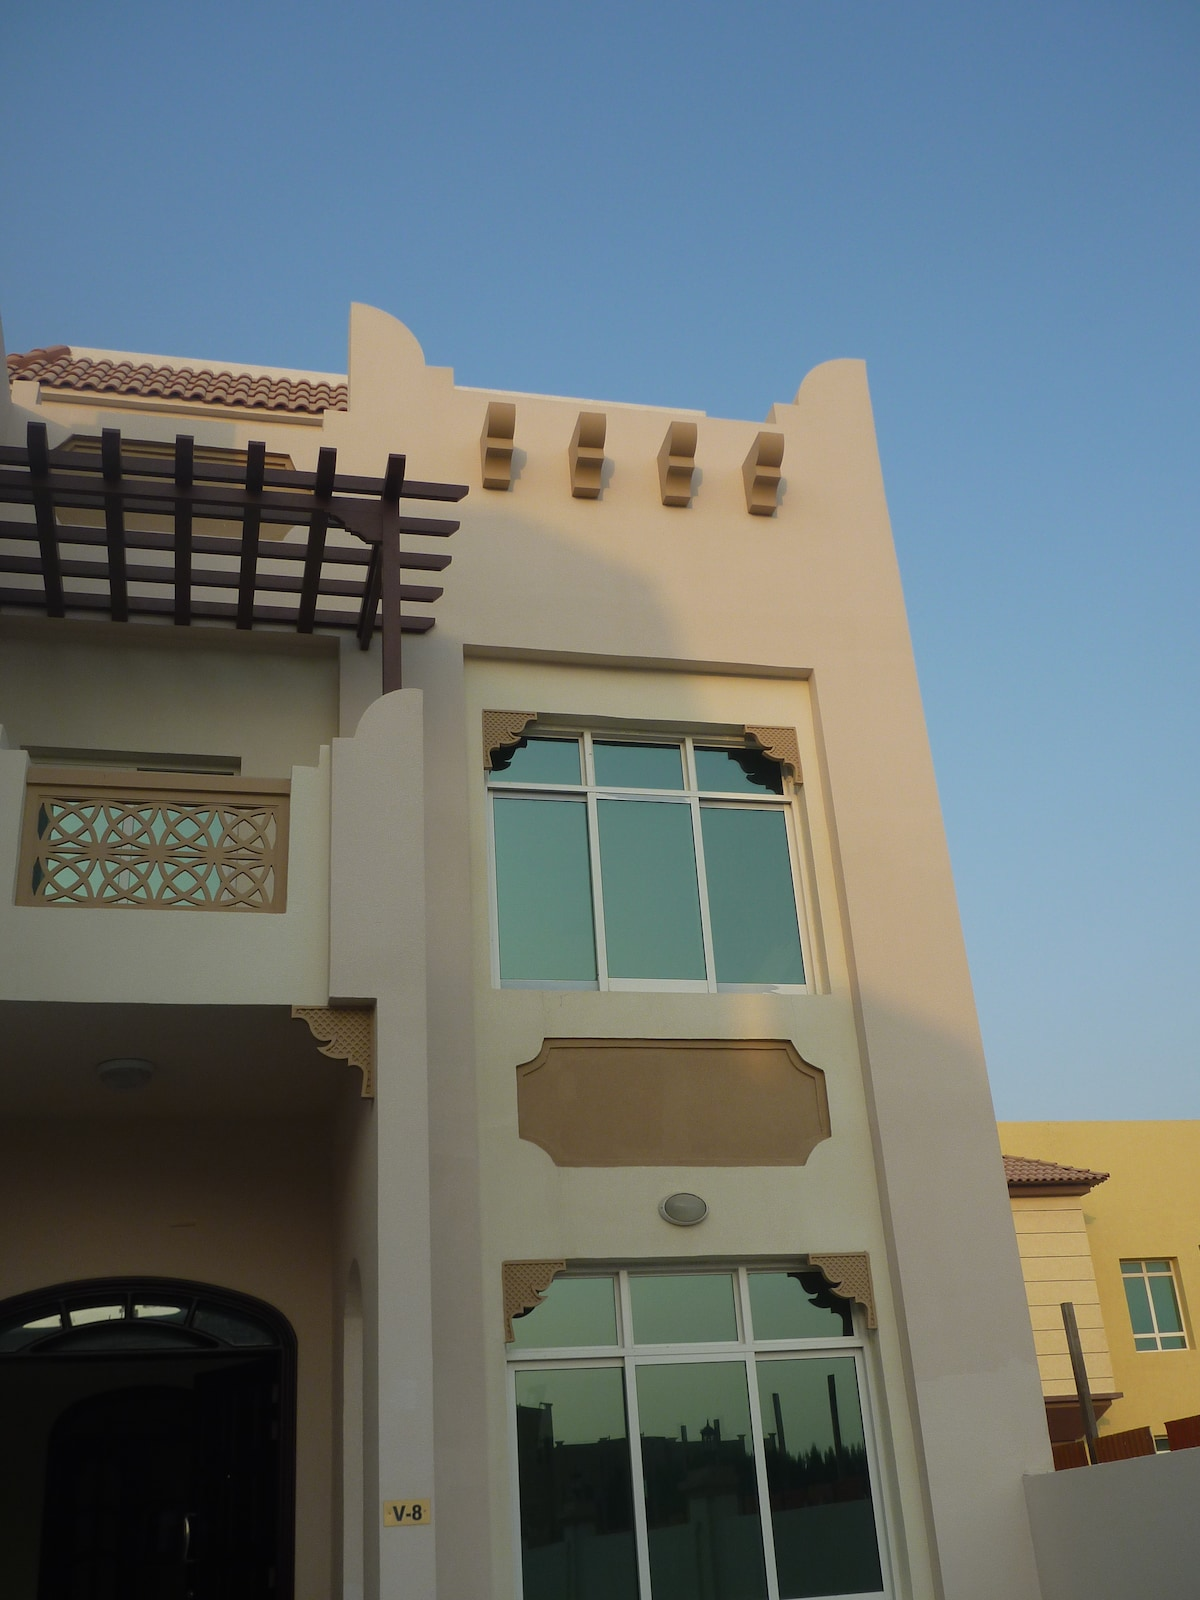 Front view of three stories villa